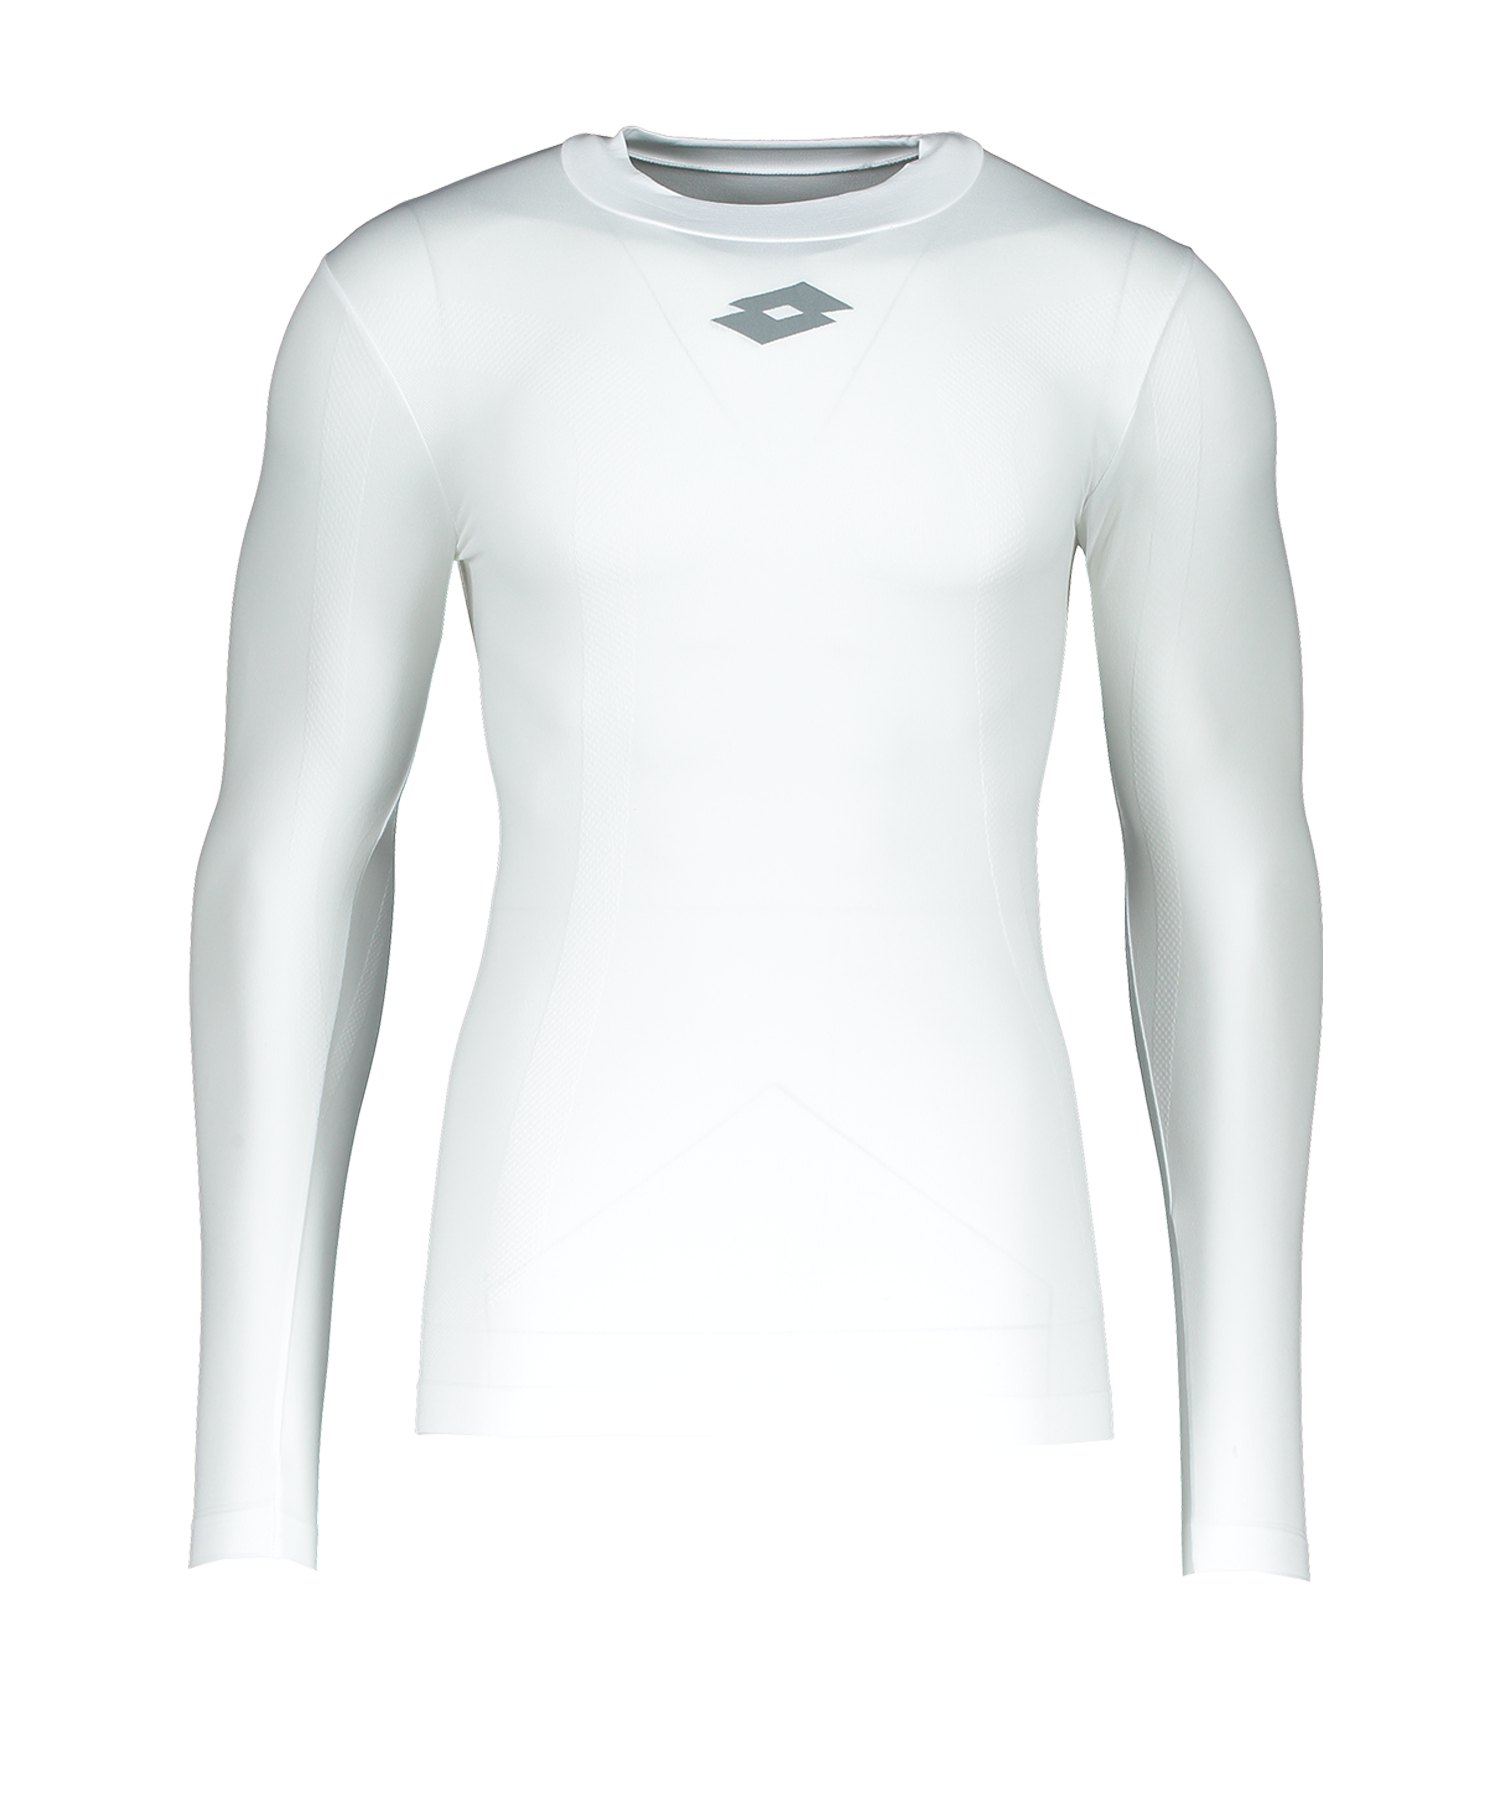 Lotto Delta Top langarm Weiss F0F1 - weiss